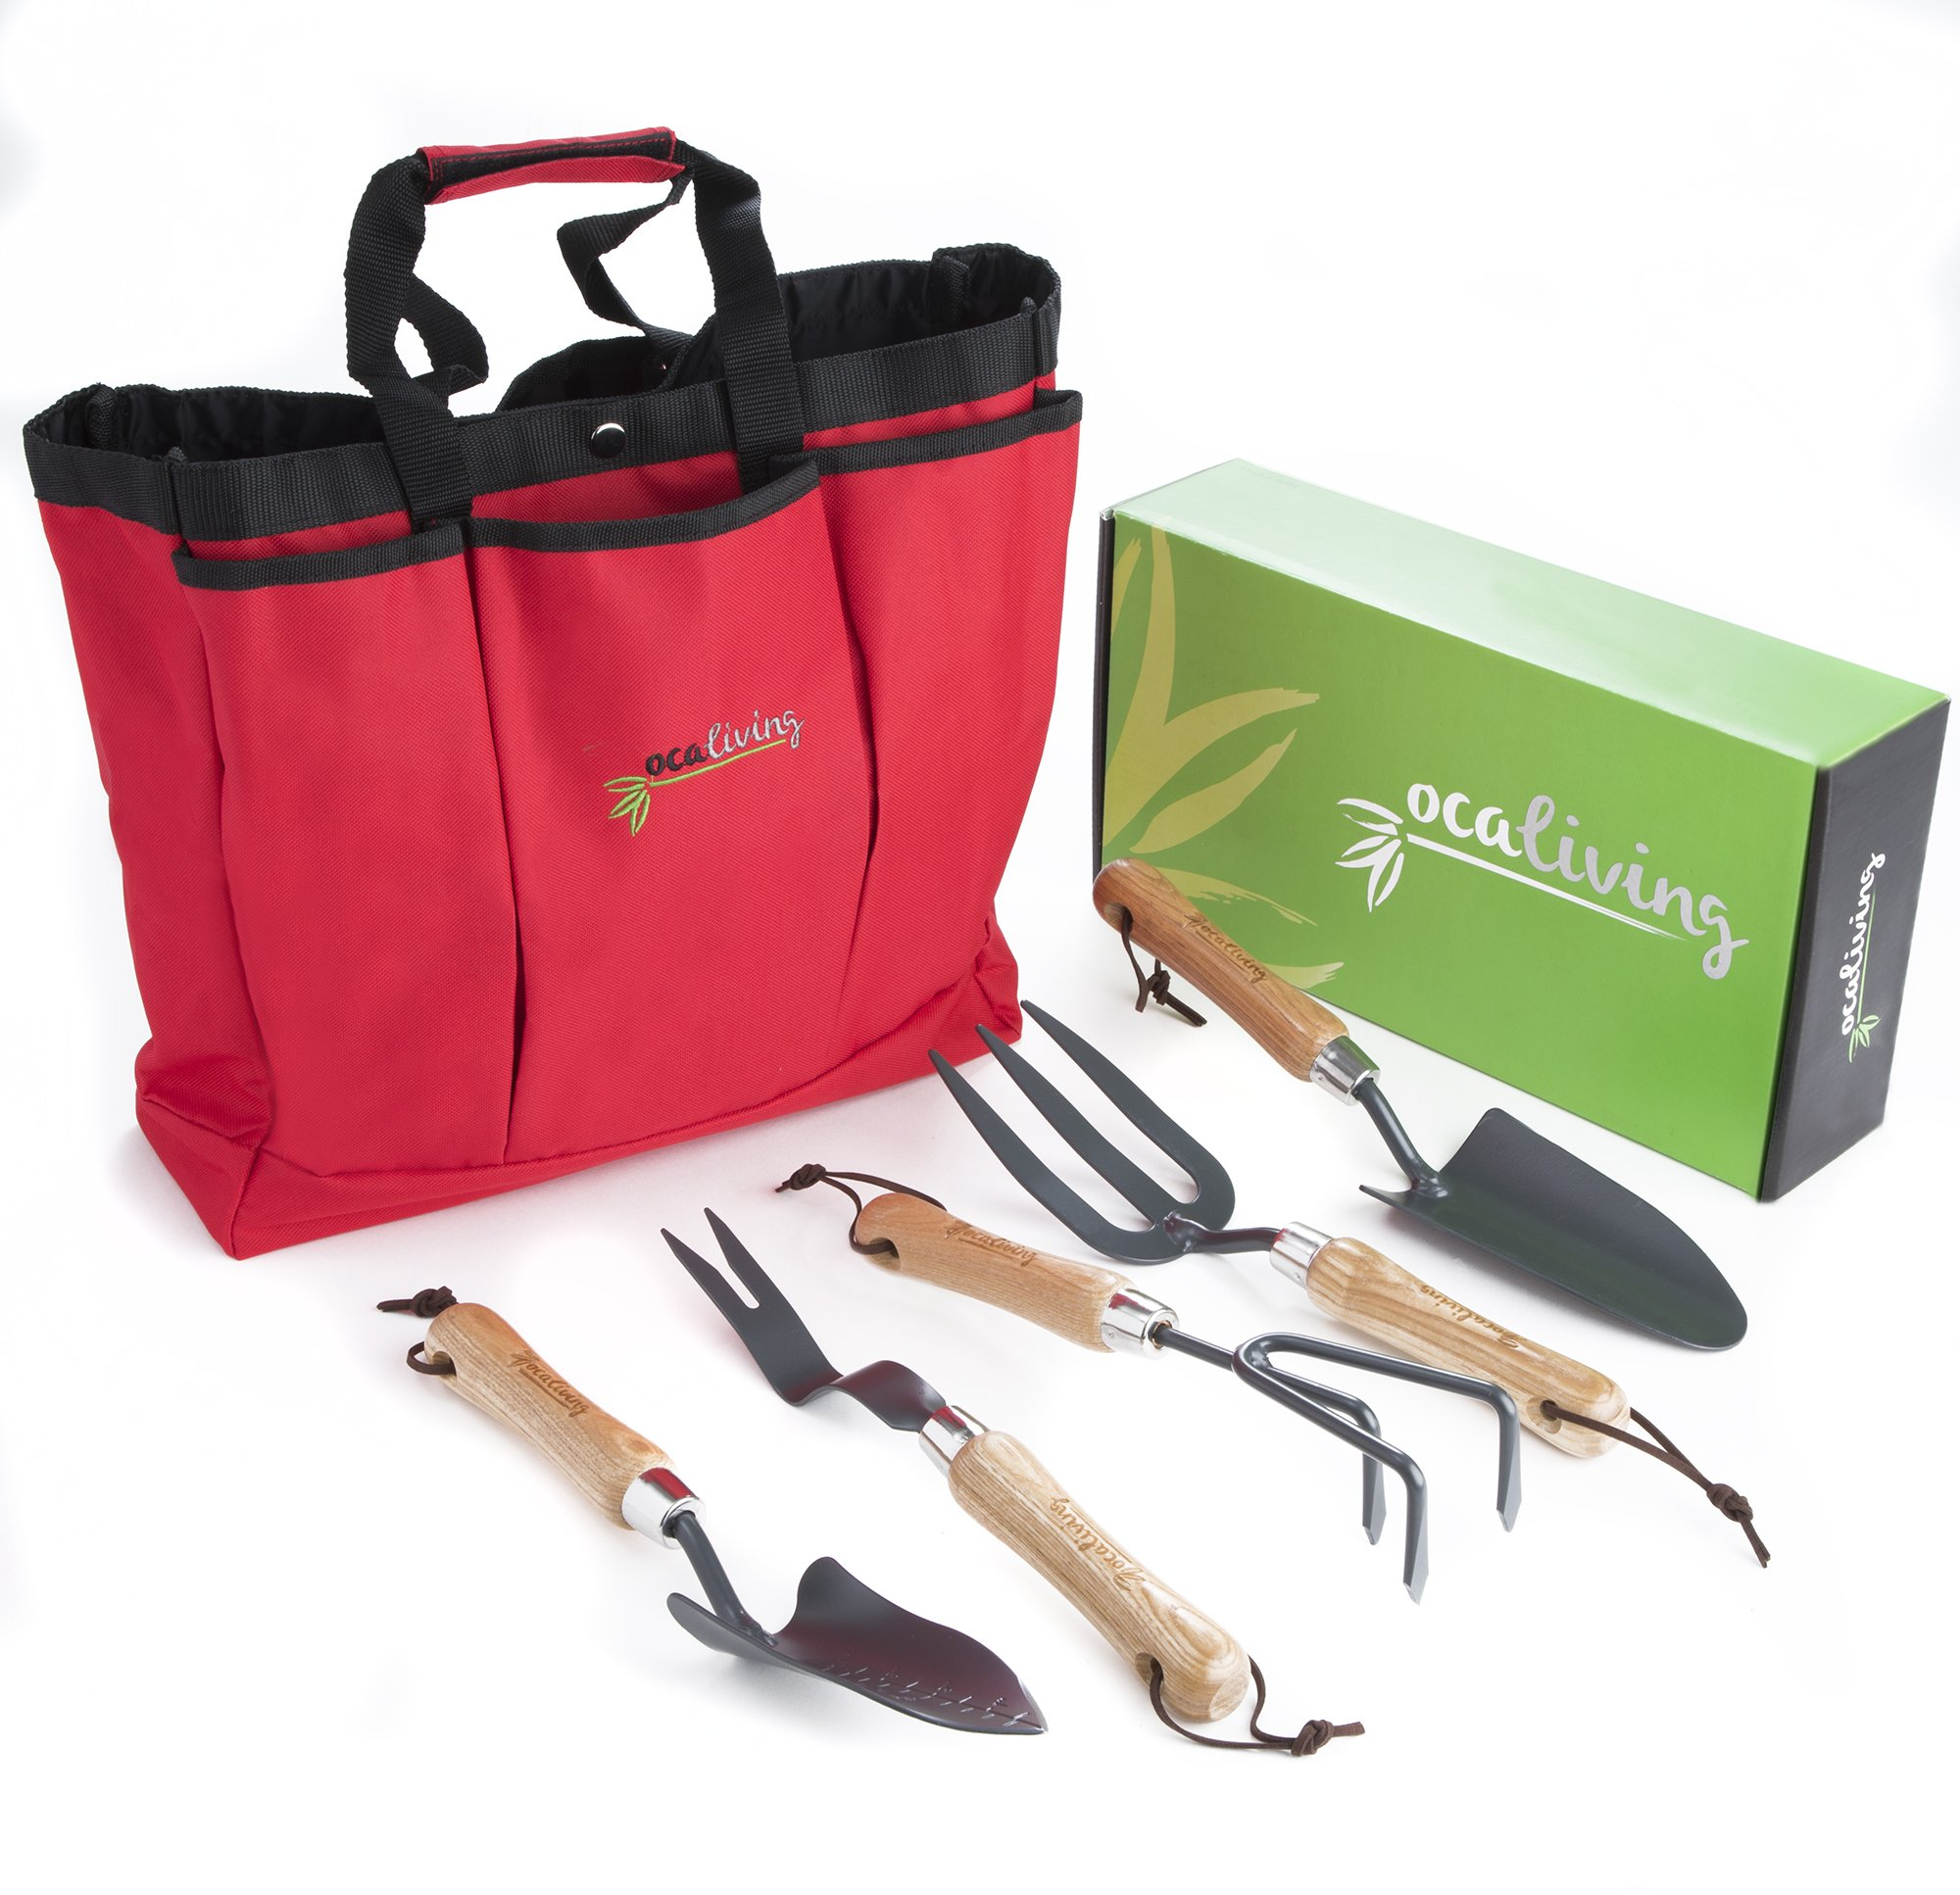 Gorgeous, 6-piece Garden Hand Tool Set inc. Cherry Red, Weather-Resistant Storage Bag - Gardening and Planting Kit Essentials - Sharp, Steel Planter Accessories with Ergonomic Wood Handles